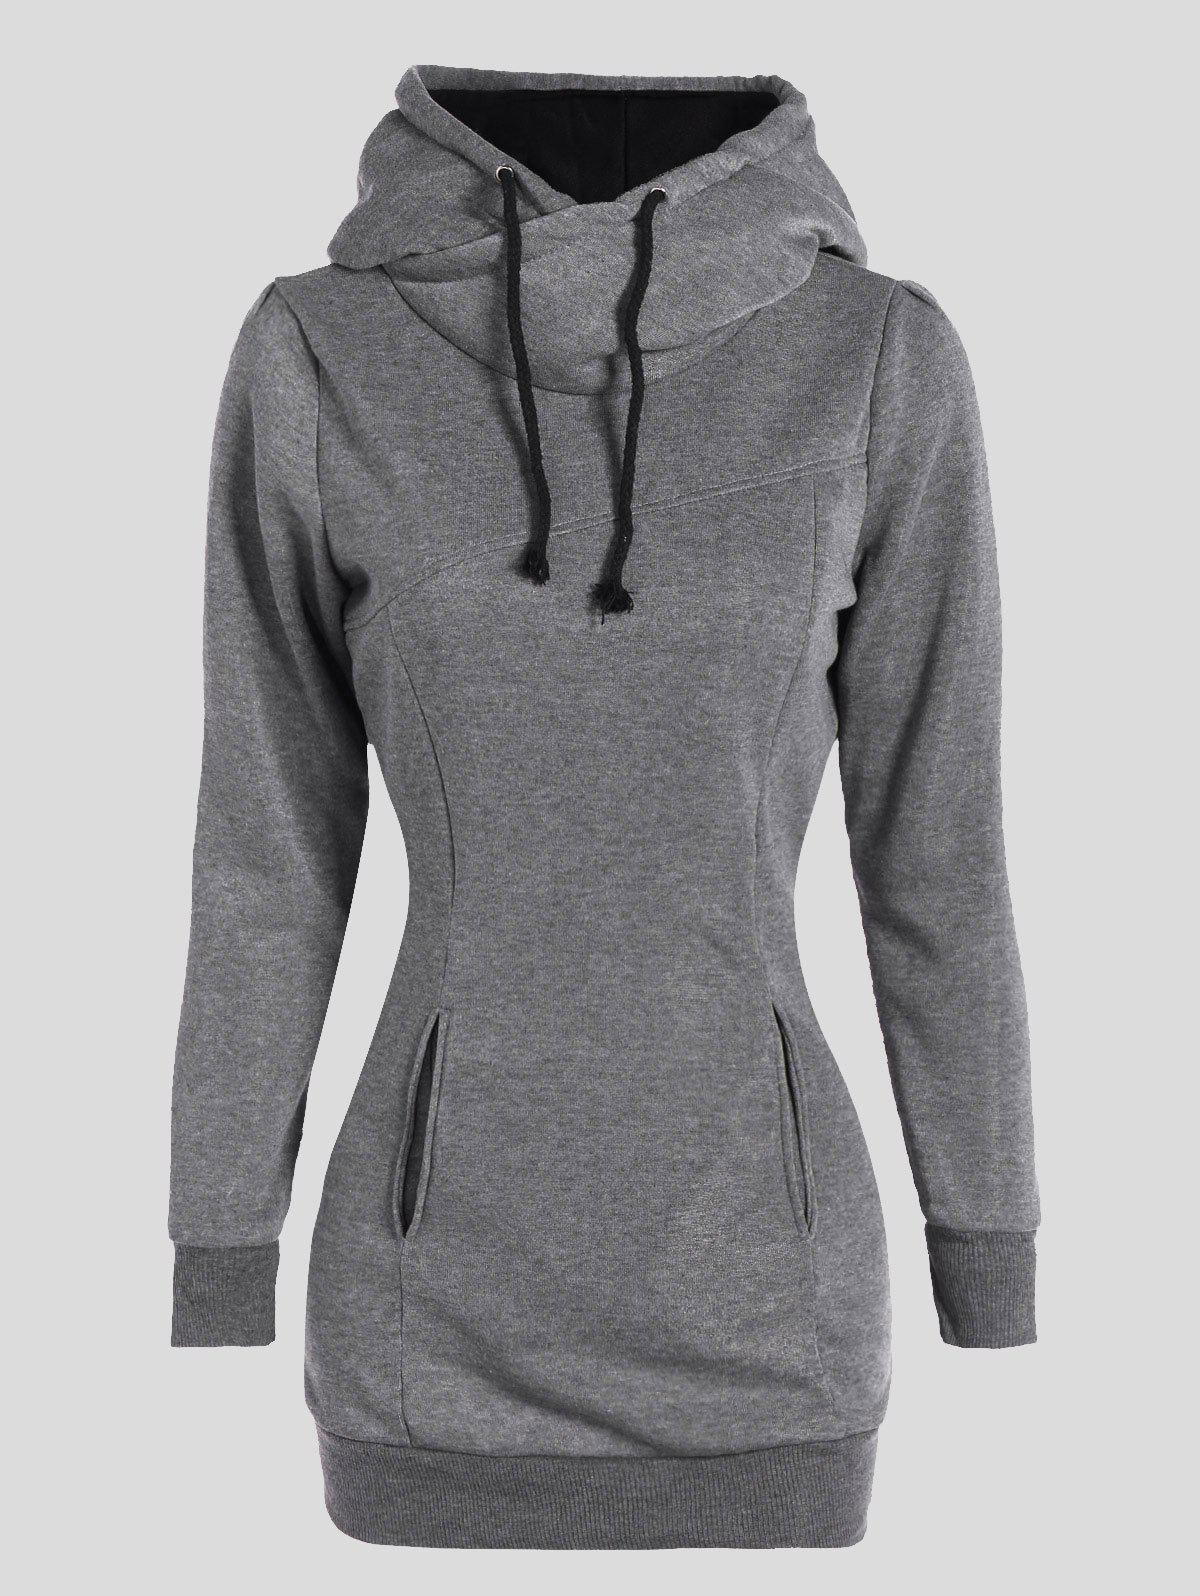 Slimming Pullover Pockets Design HoodieWOMEN<br><br>Size: 4XL; Color: GRAY; Material: Polyester; Shirt Length: Long; Sleeve Length: Full; Style: Casual; Pattern Style: Solid; Season: Fall,Spring; Weight: 0.470kg; Package Contents: 1 x Hoodie;